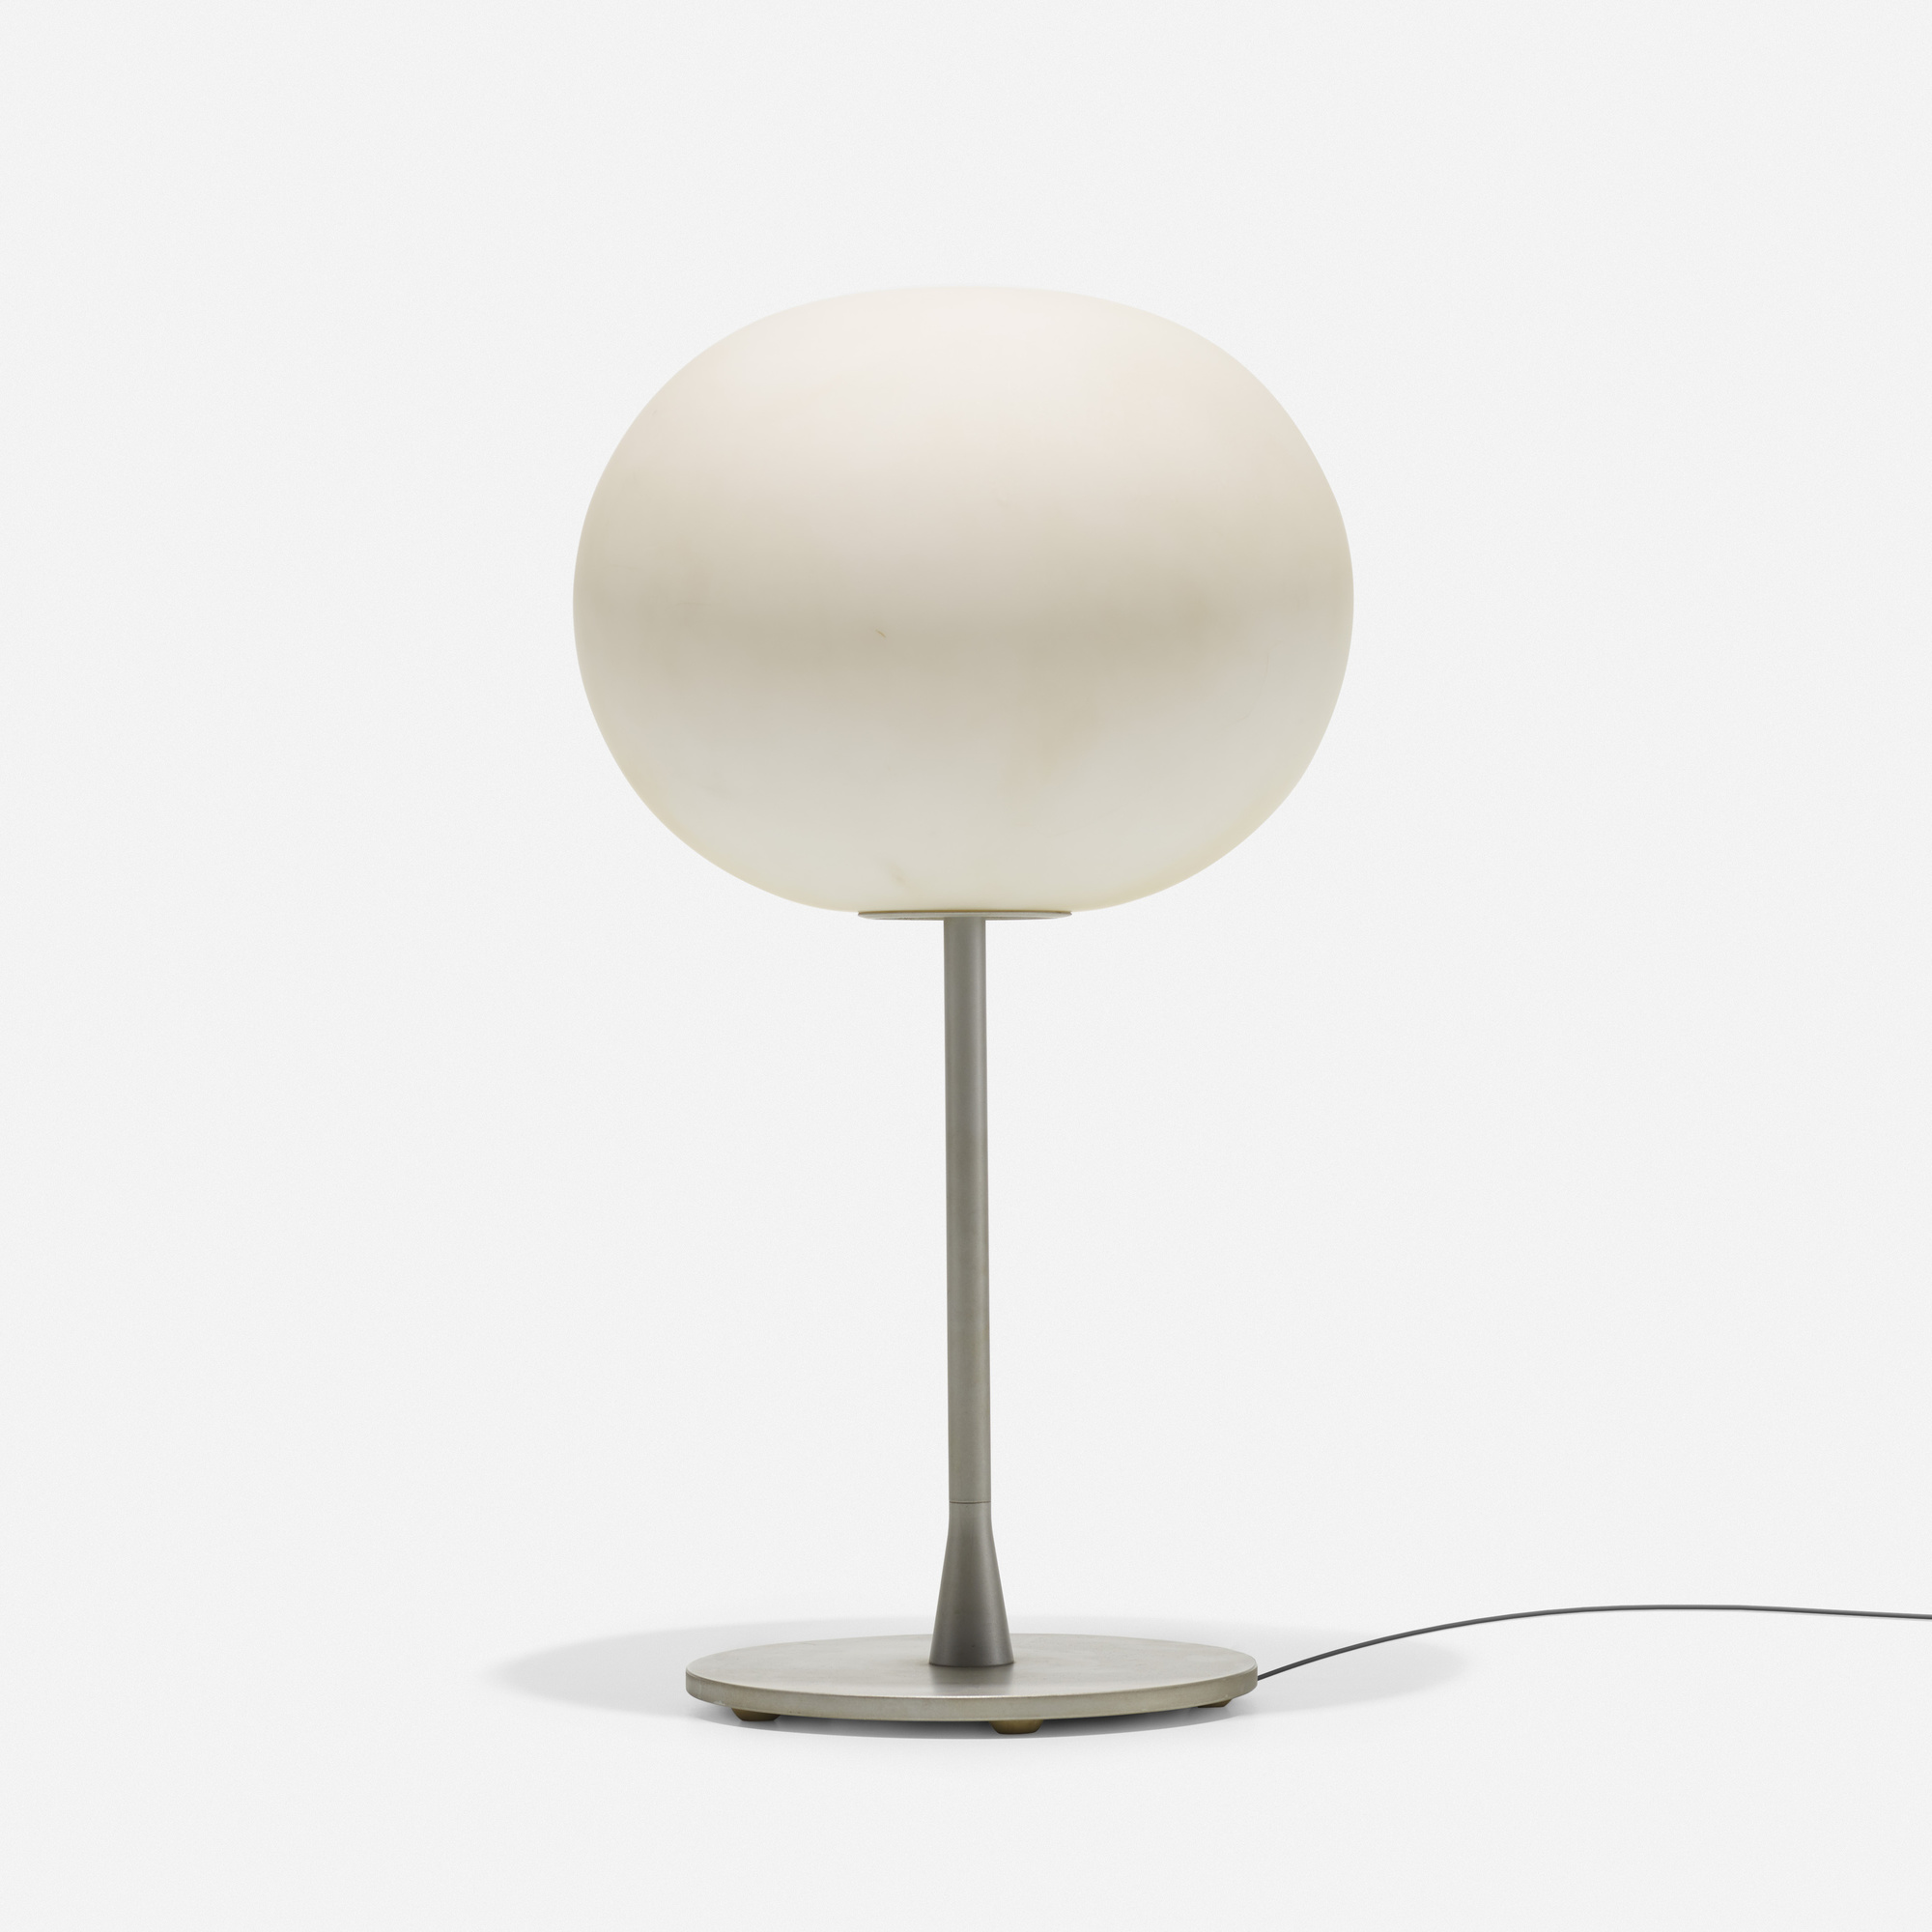 258: Jasper Morrison / Glo-Ball T table lamp (1 of 1)